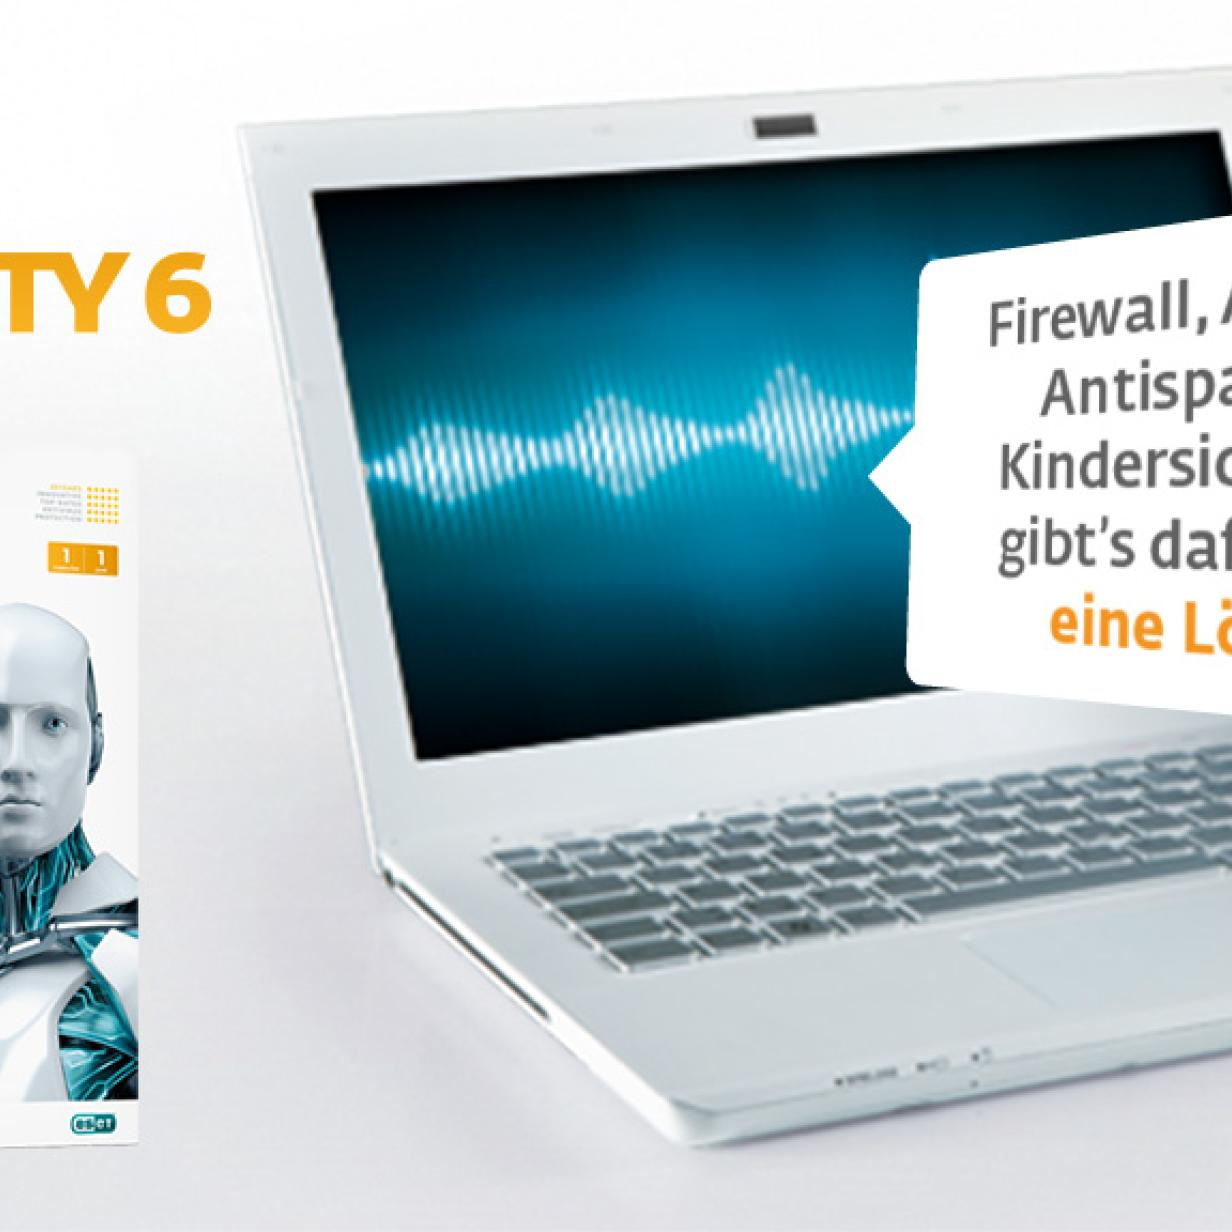 Laptop Orten Eset Smart Security 6 Spürt Gestohlene Laptops Auf Futurezone At